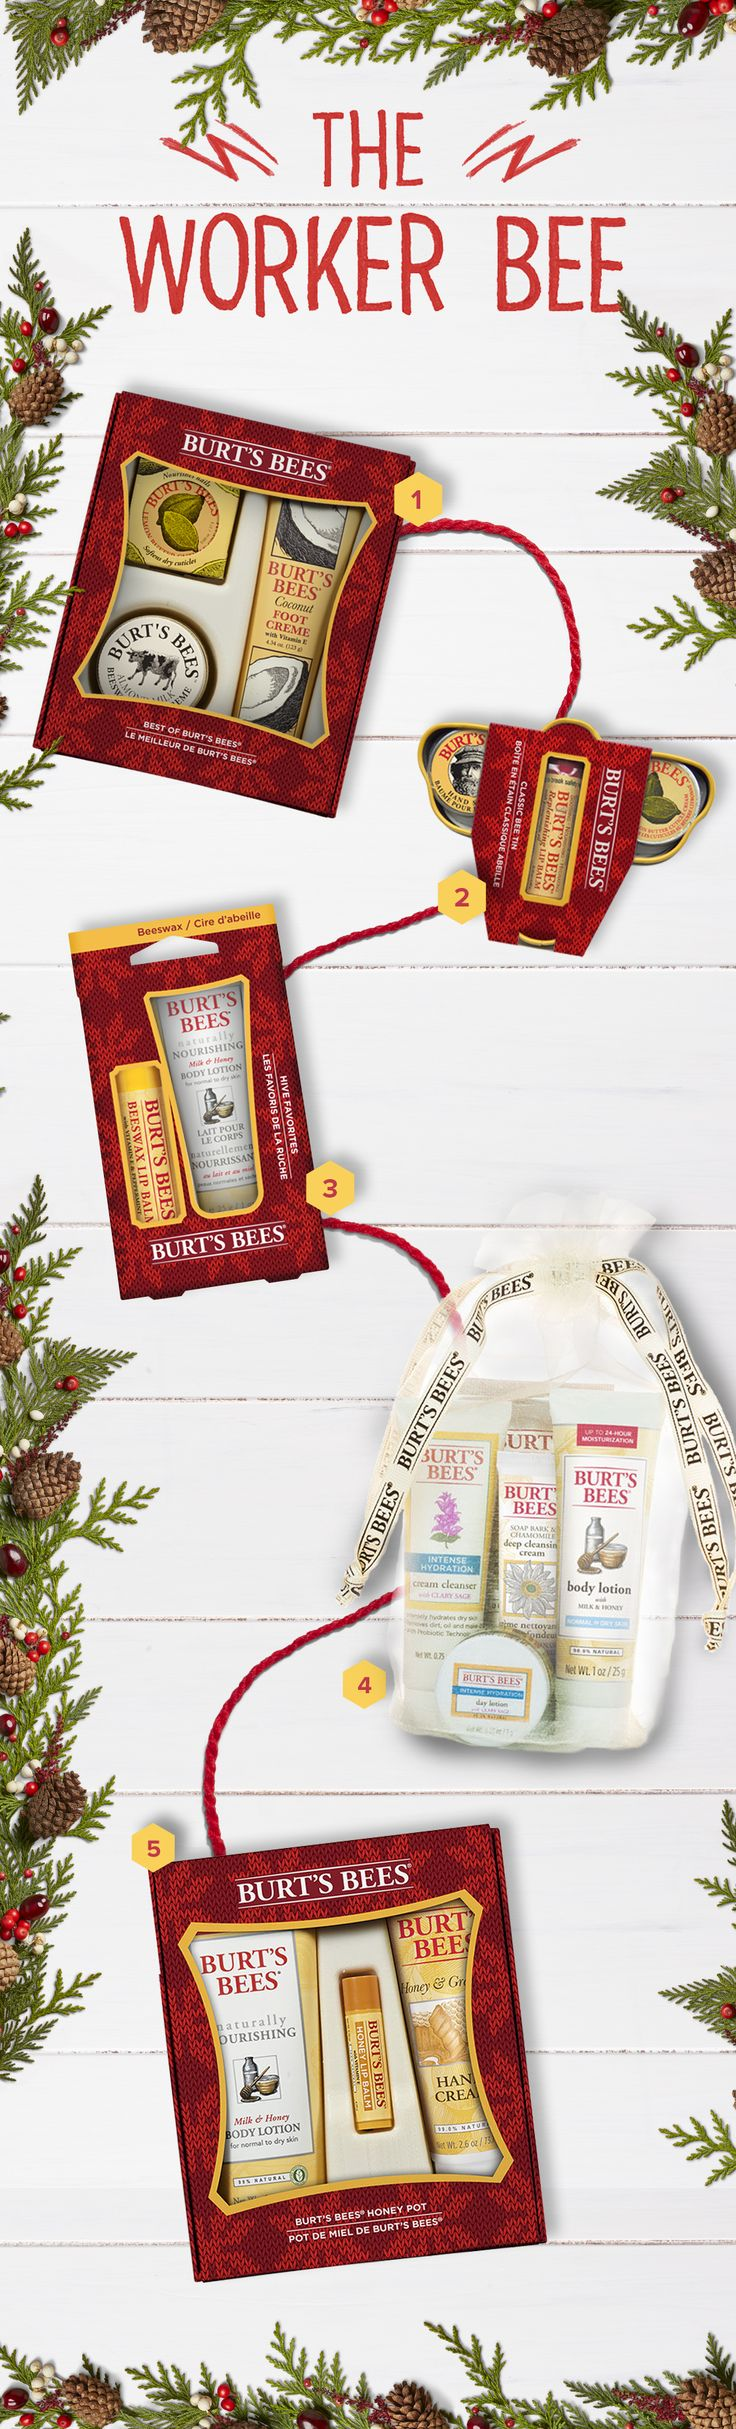 2016 Holiday Gift Guide for The Worker Bee   Maybe they leave cookies in the breakroom. Maybe they take monotony out of Mondays. Whatever your reason, show your workplace appreciation to a fellow Worker Bee with all-natural personal care products from Burt's Bees.